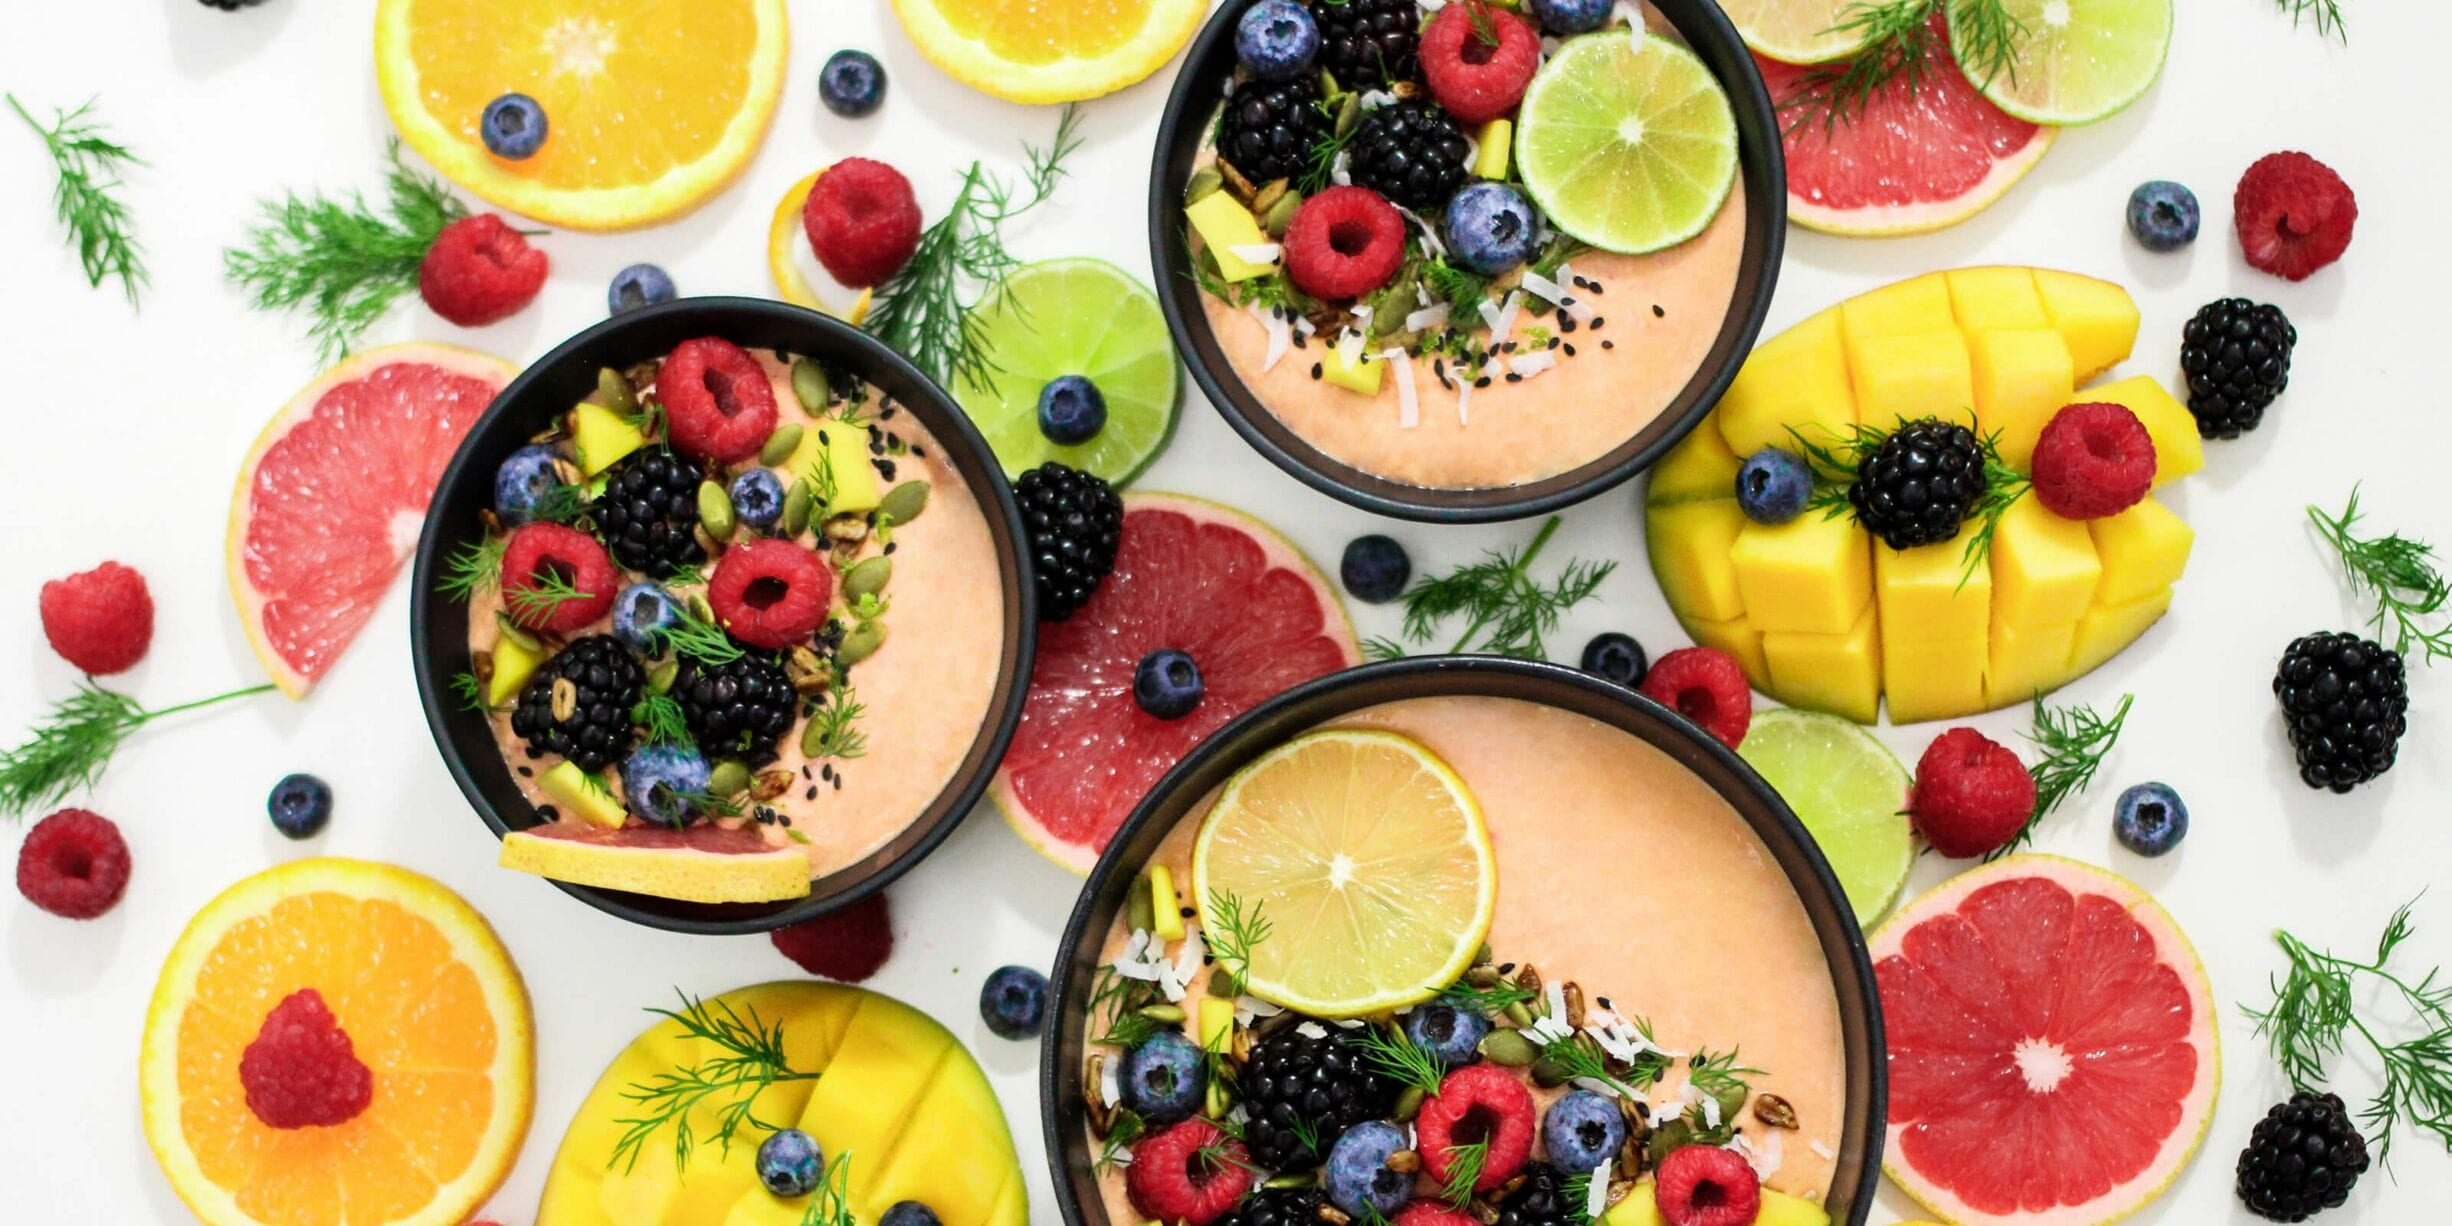 smoothie bowls with fruit and berries